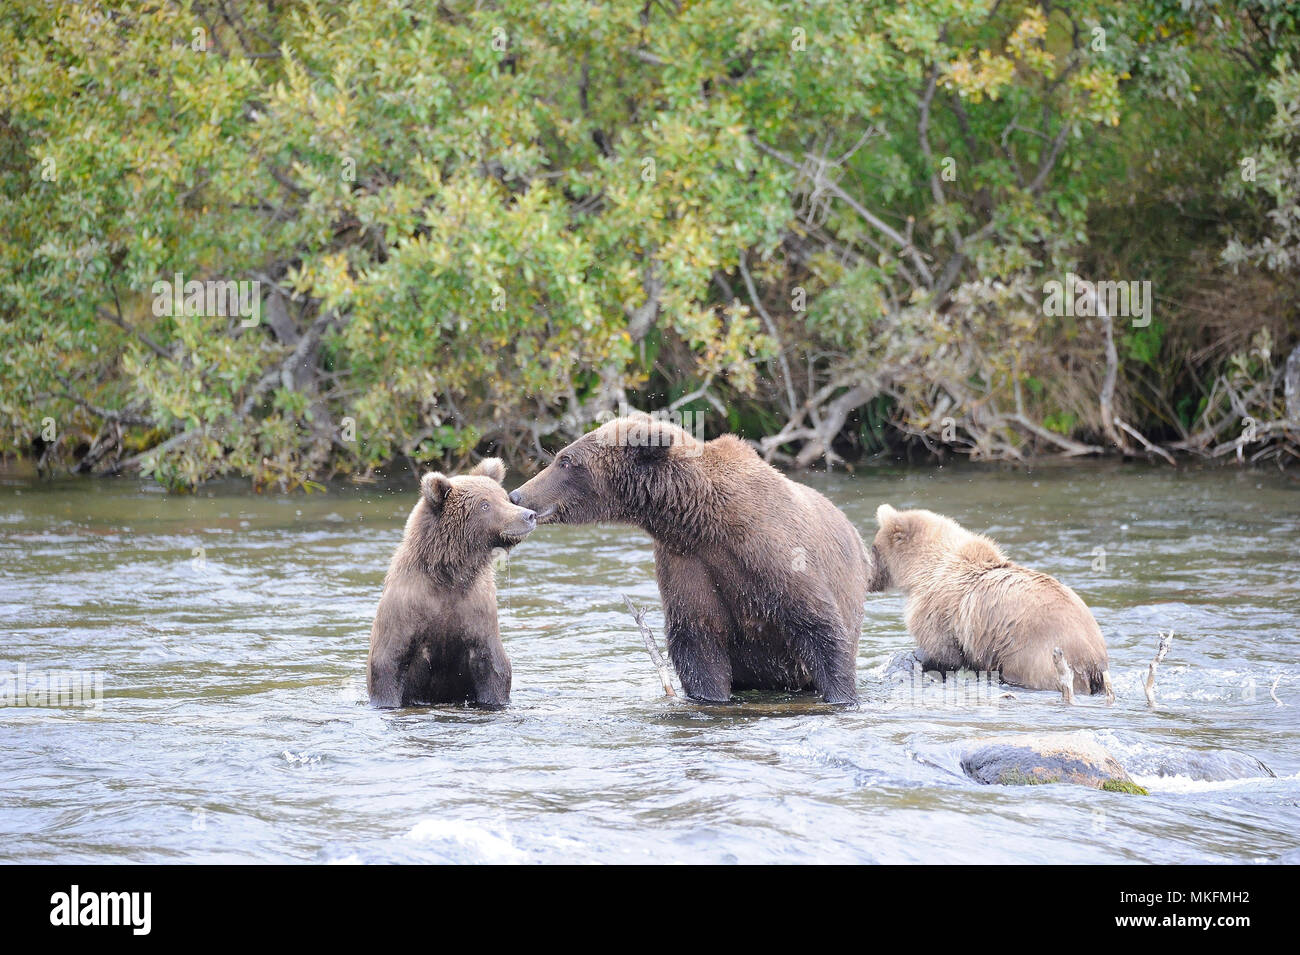 Grizzly (Ursus arctos horribilis) and cubs in water, Katmai National park Alaska USA Stock Photo